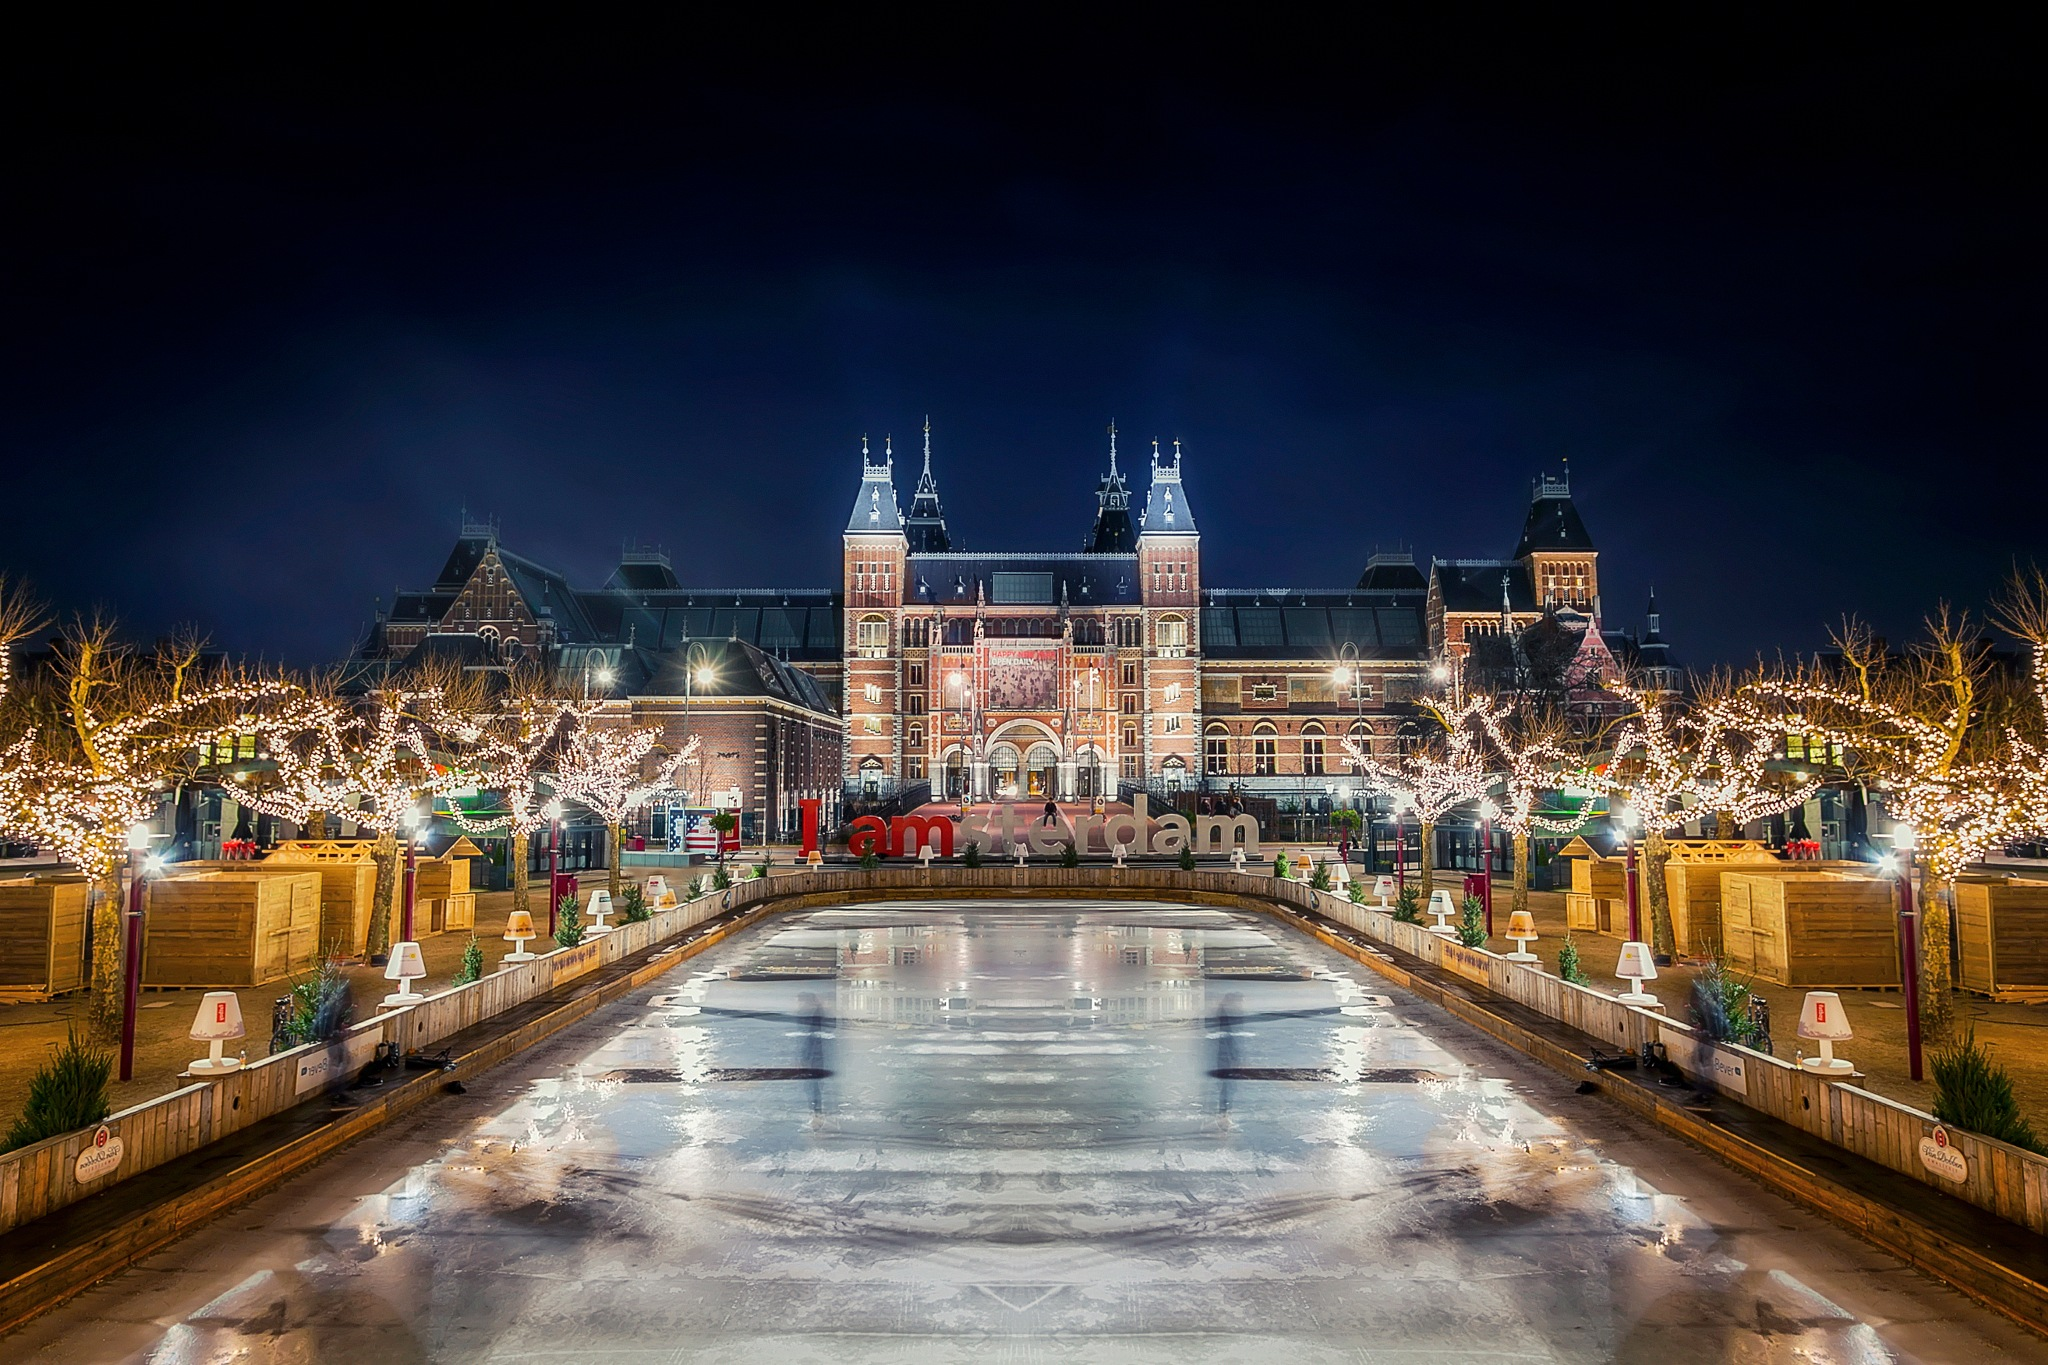 Embrace The Night - 'Museumplein' by Jelle Harberts